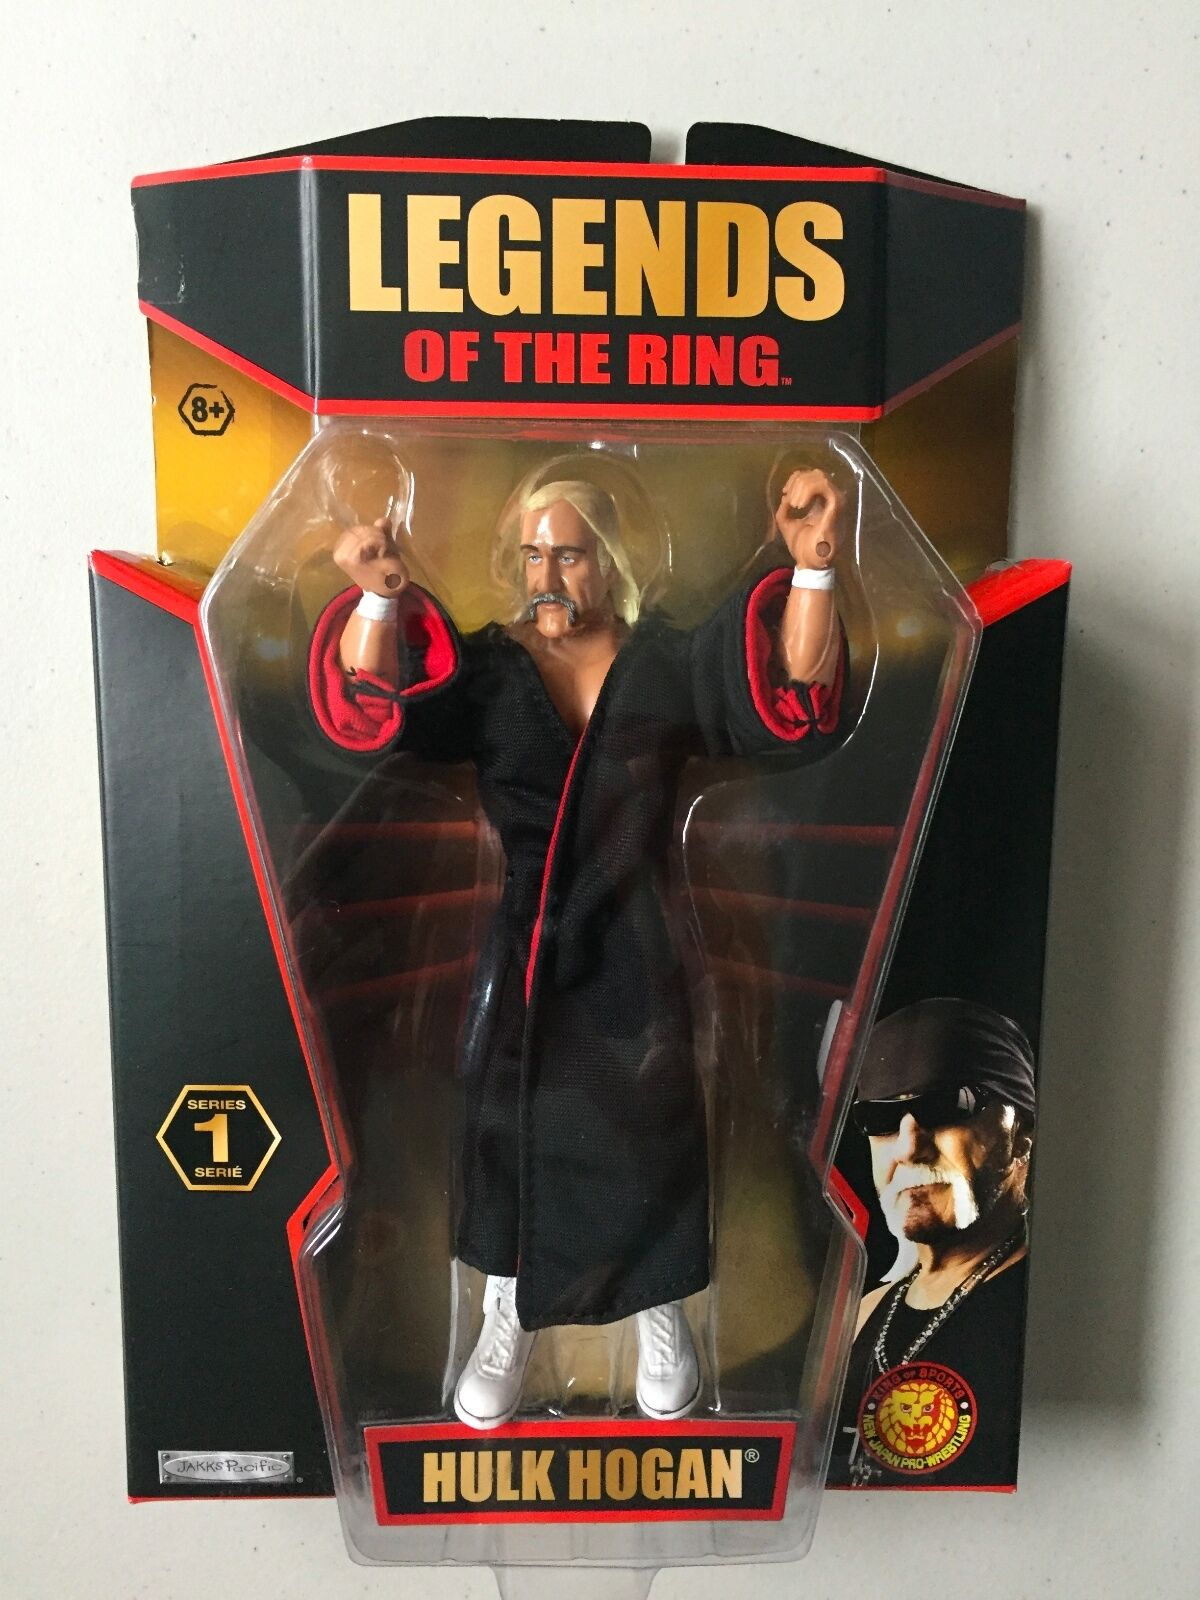 TNA Legends of the Ring HULK HOGAN Wrestling Figure WWE WWF Classic Superstars